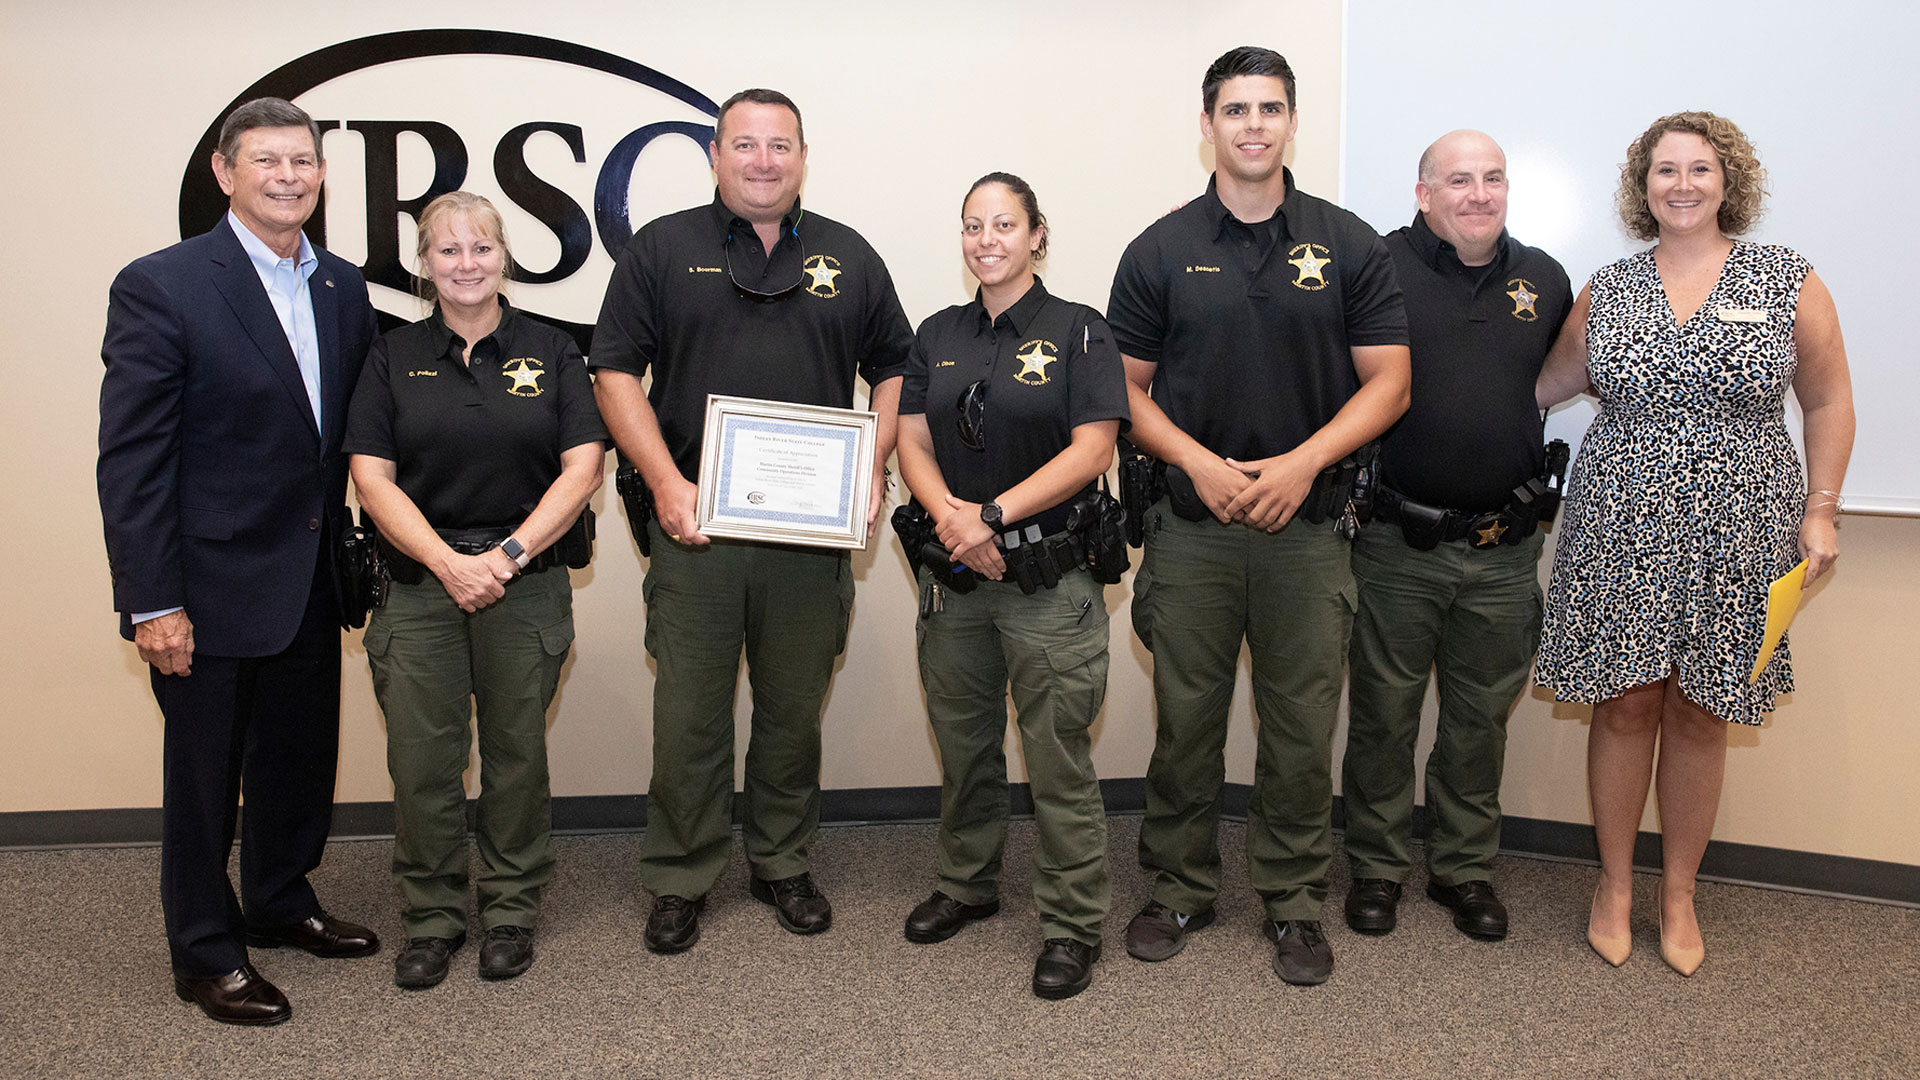 IRSC Recognizes Martin County Sheriff's Office Community Operations Division